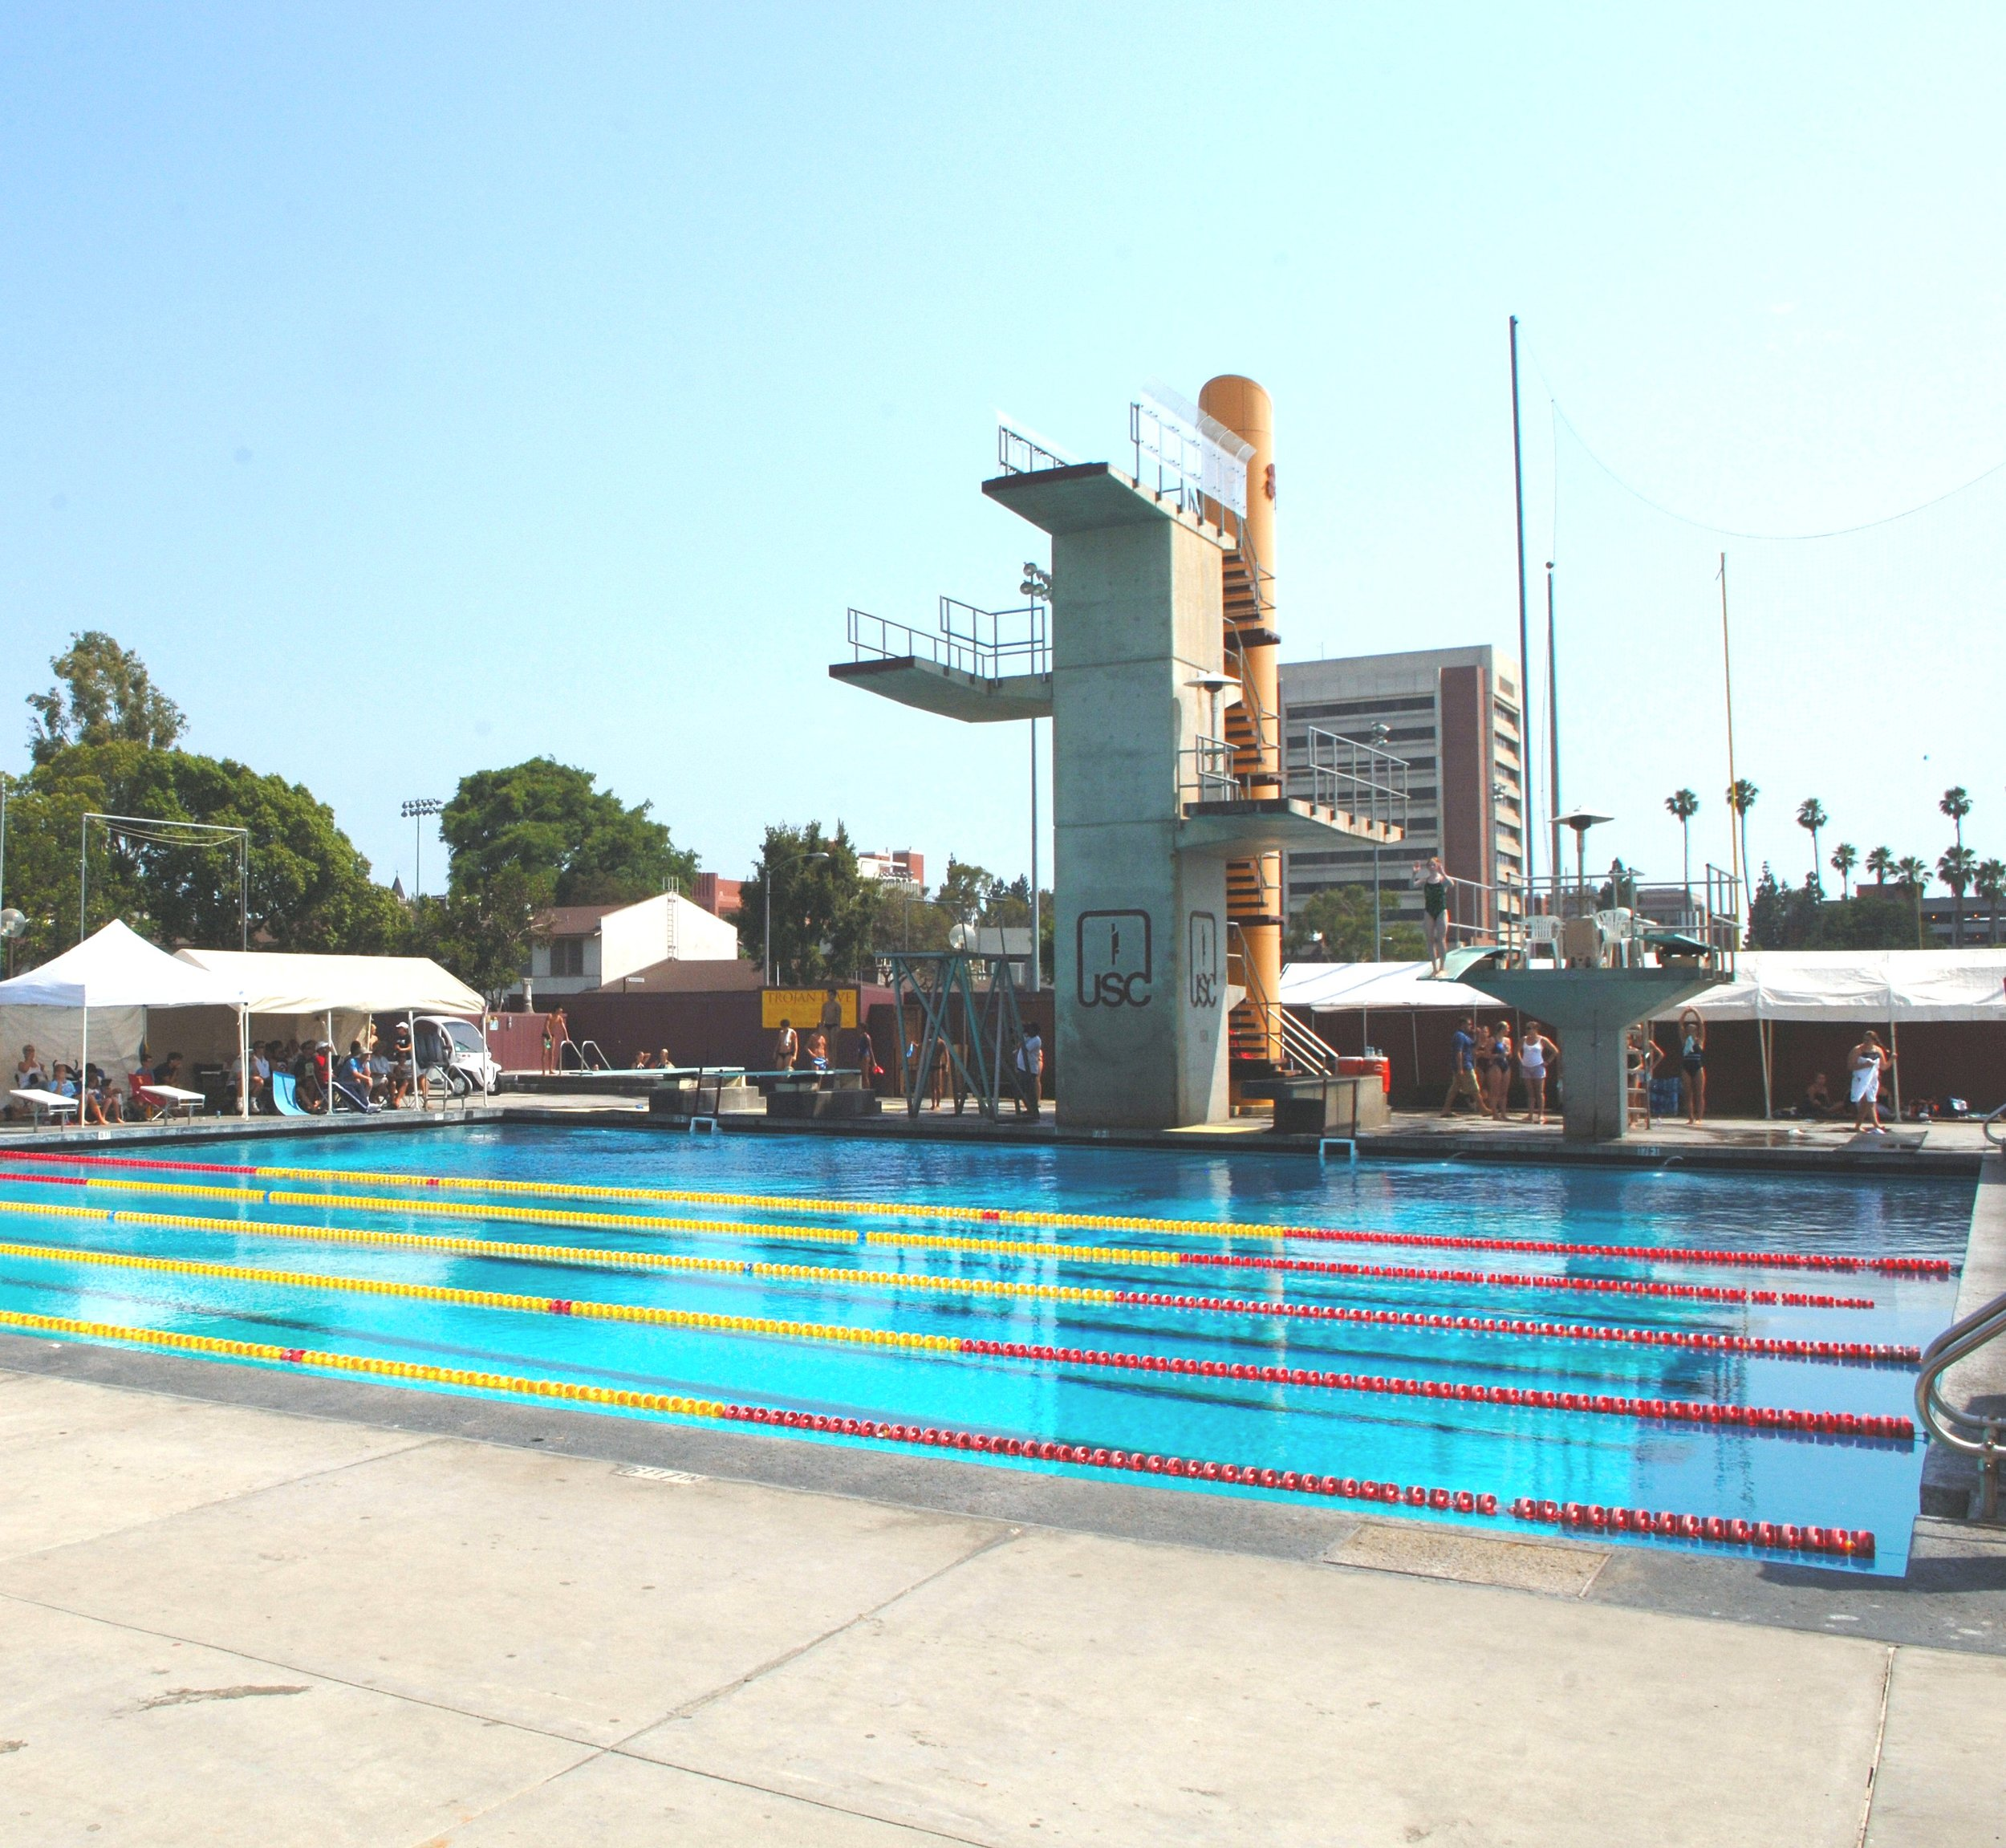 The 10-meter diving tower at USC's McDonald Swim Stadium and the adjacent 3-meter diving platform. This diving pool is next to the 50-meter competition swimming pool.